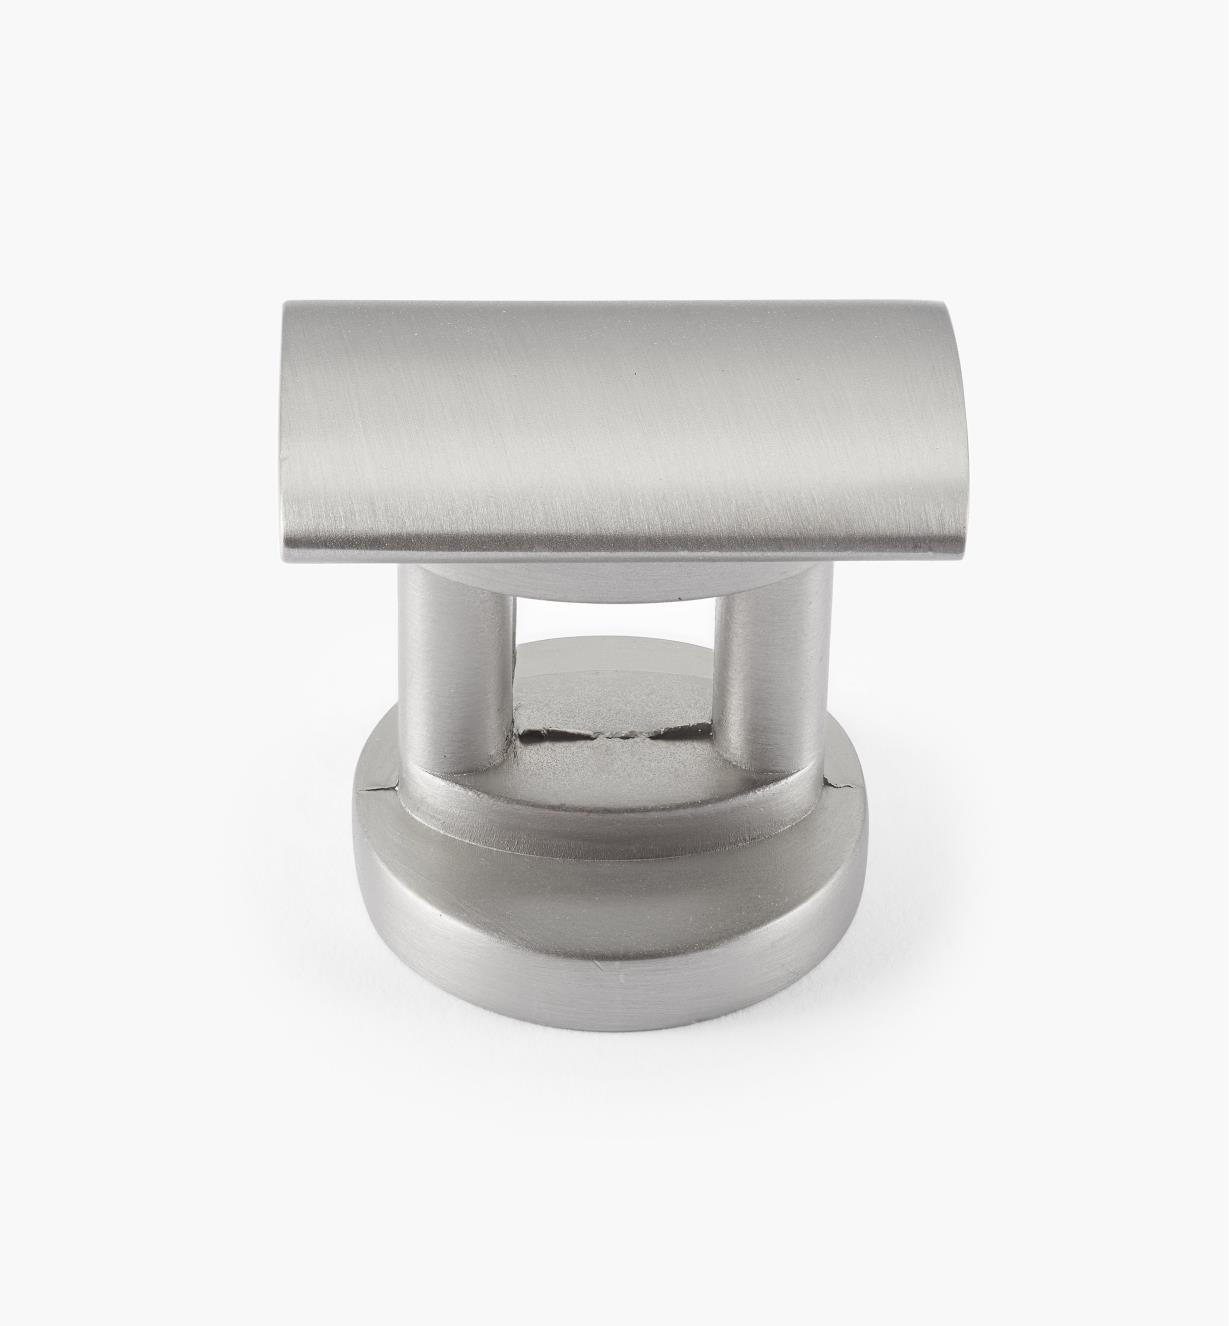 01W4430 - Monarch Satin Nickel Knob